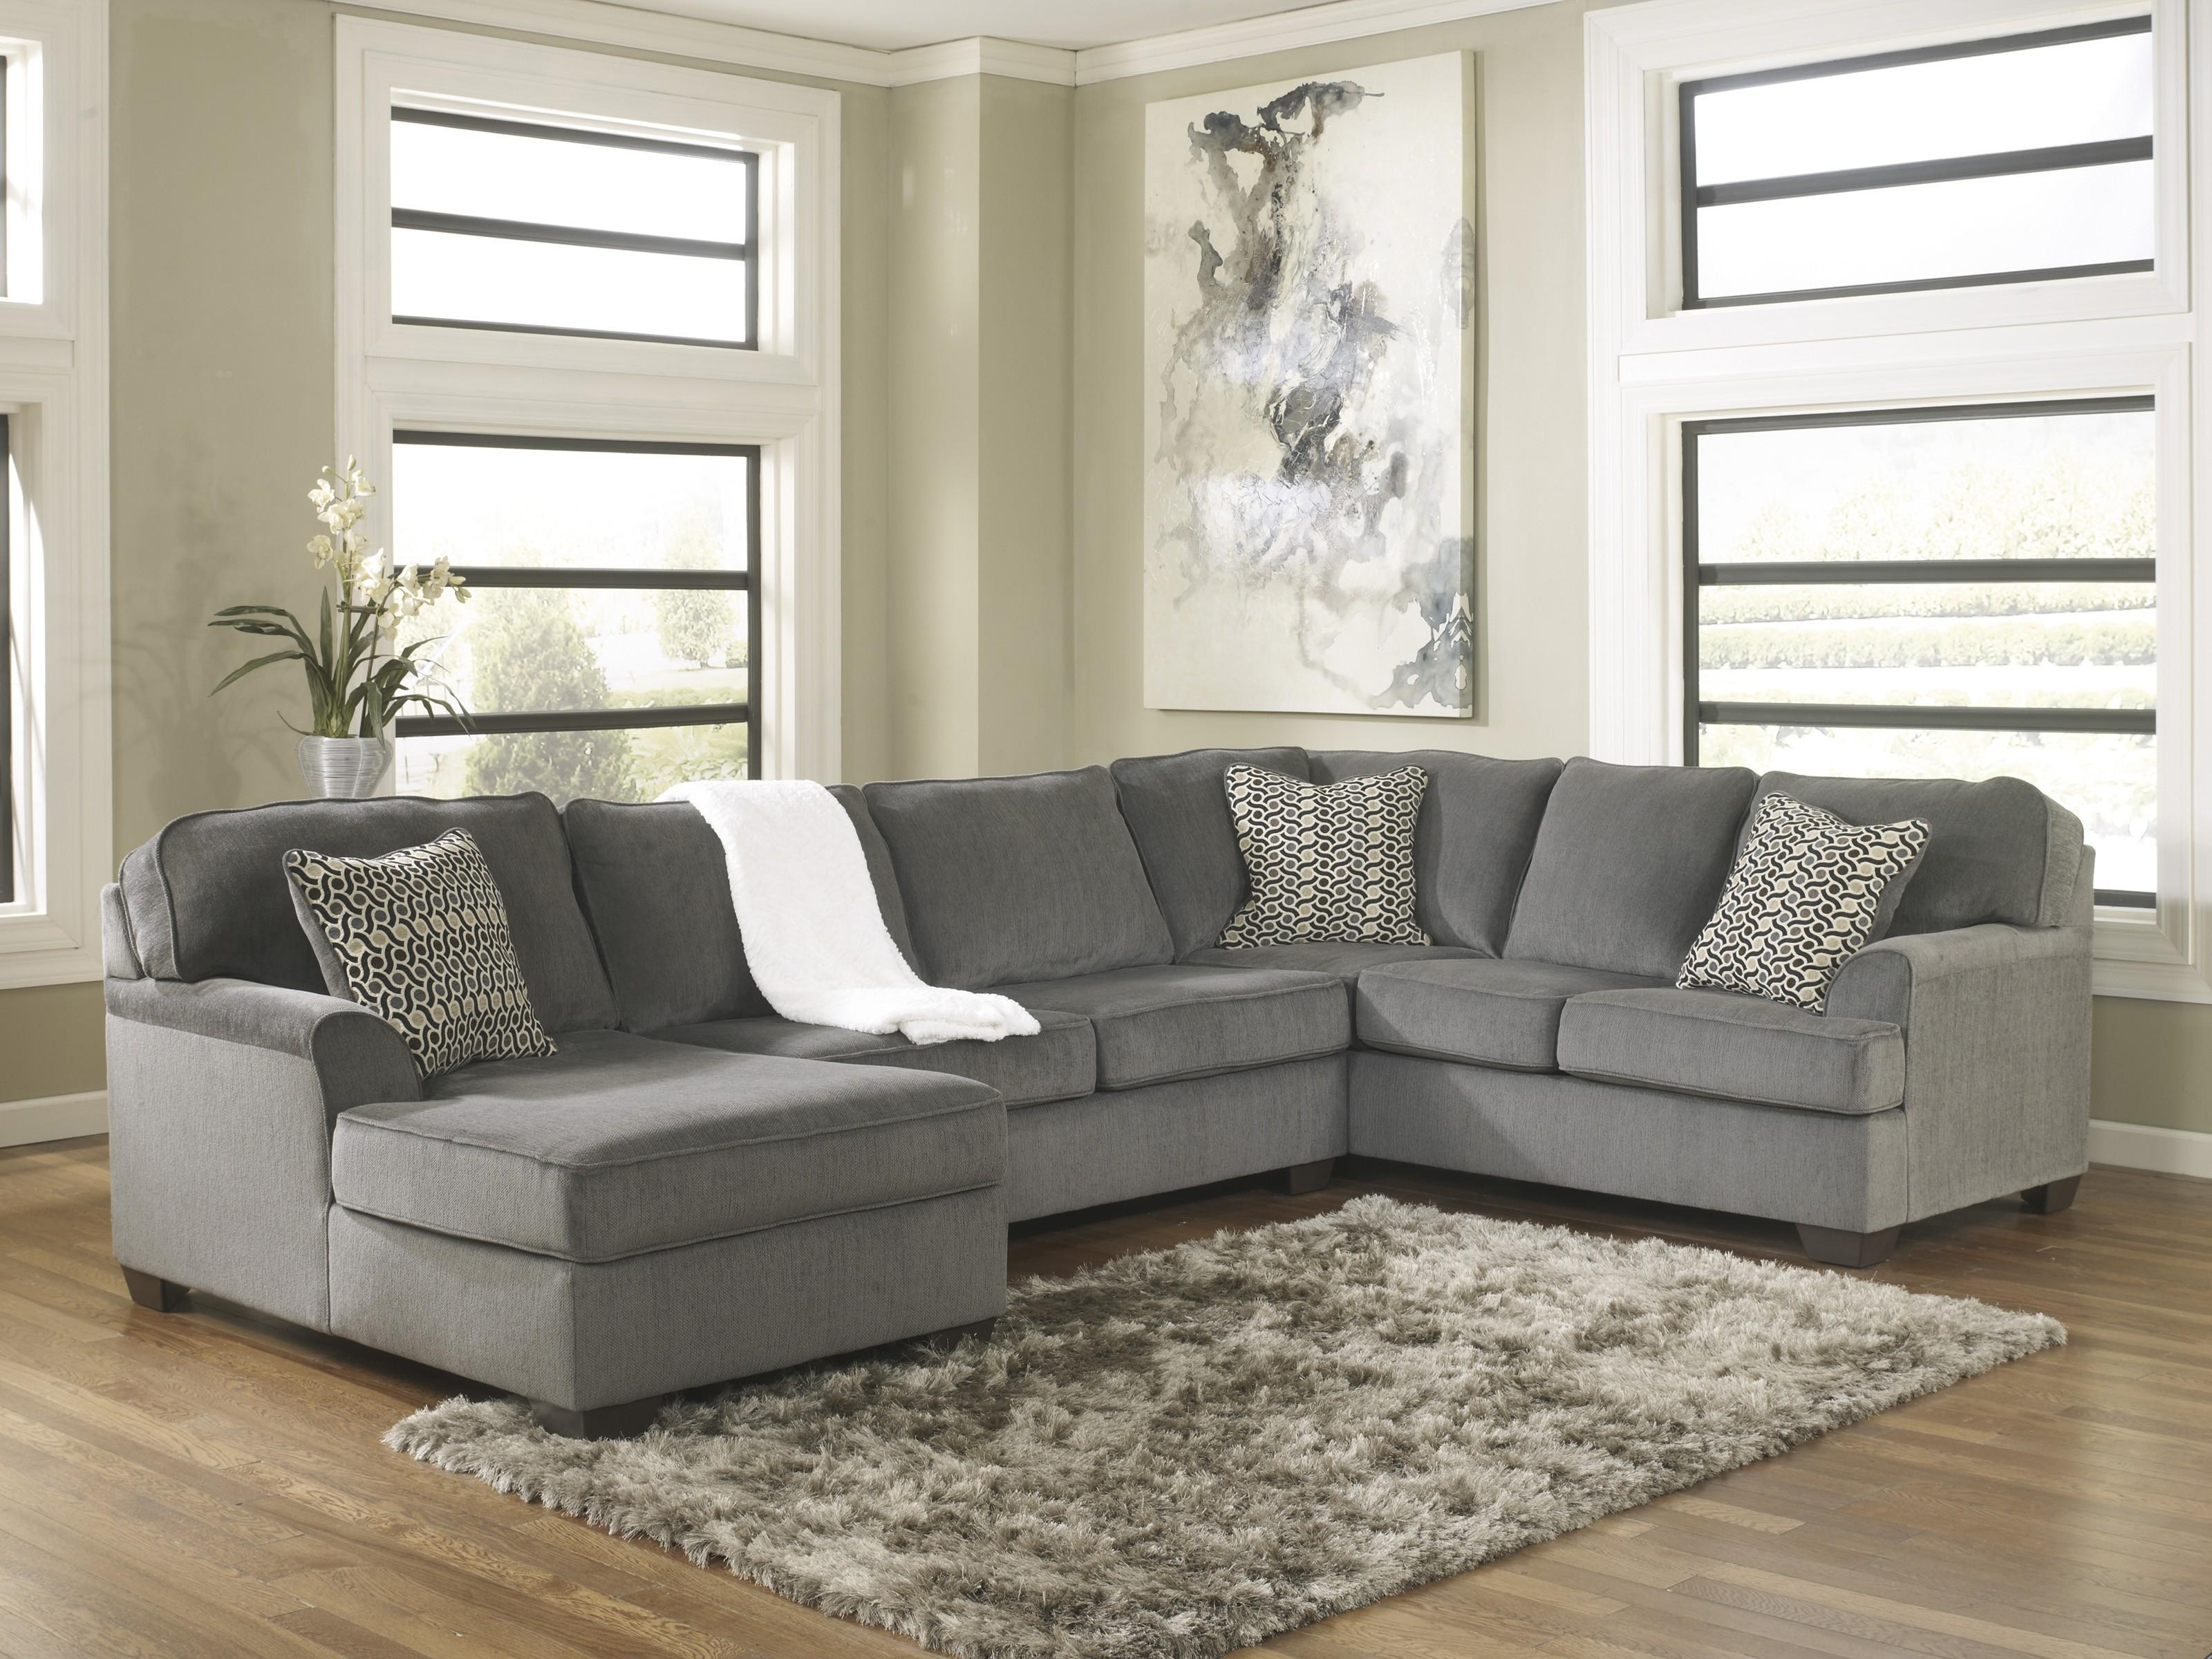 Loric Smoke 3 Piece Sectional Sofa For $ (Image 9 of 20)